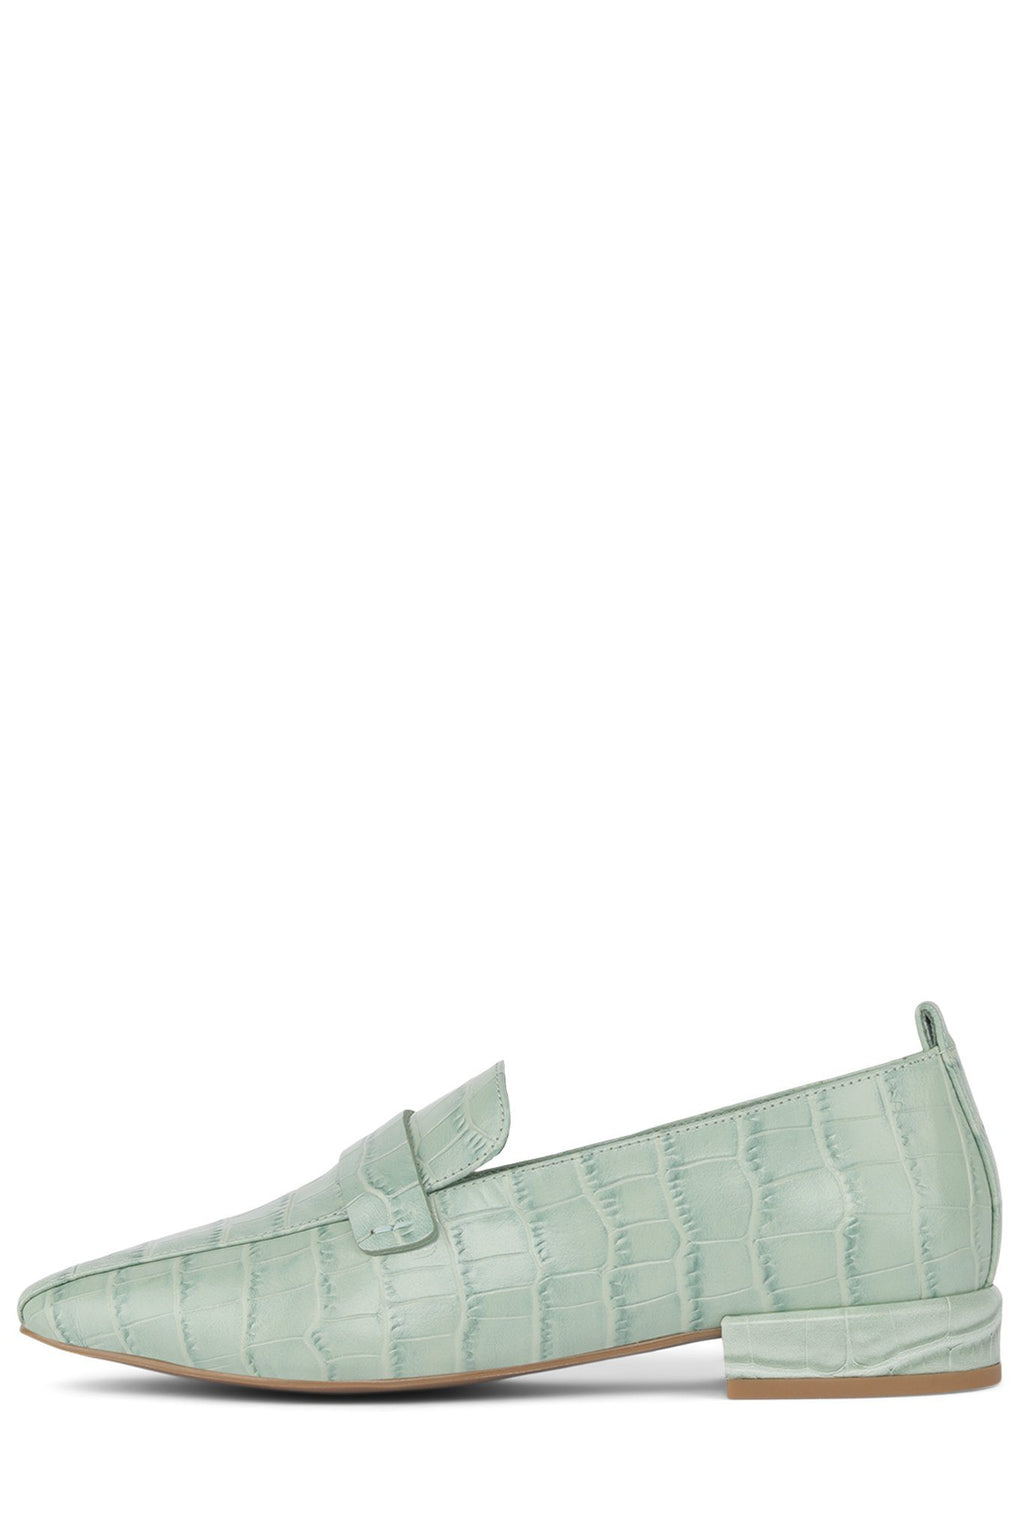 MORITZ Loafer Jeffrey Campbell Mint Croco 5